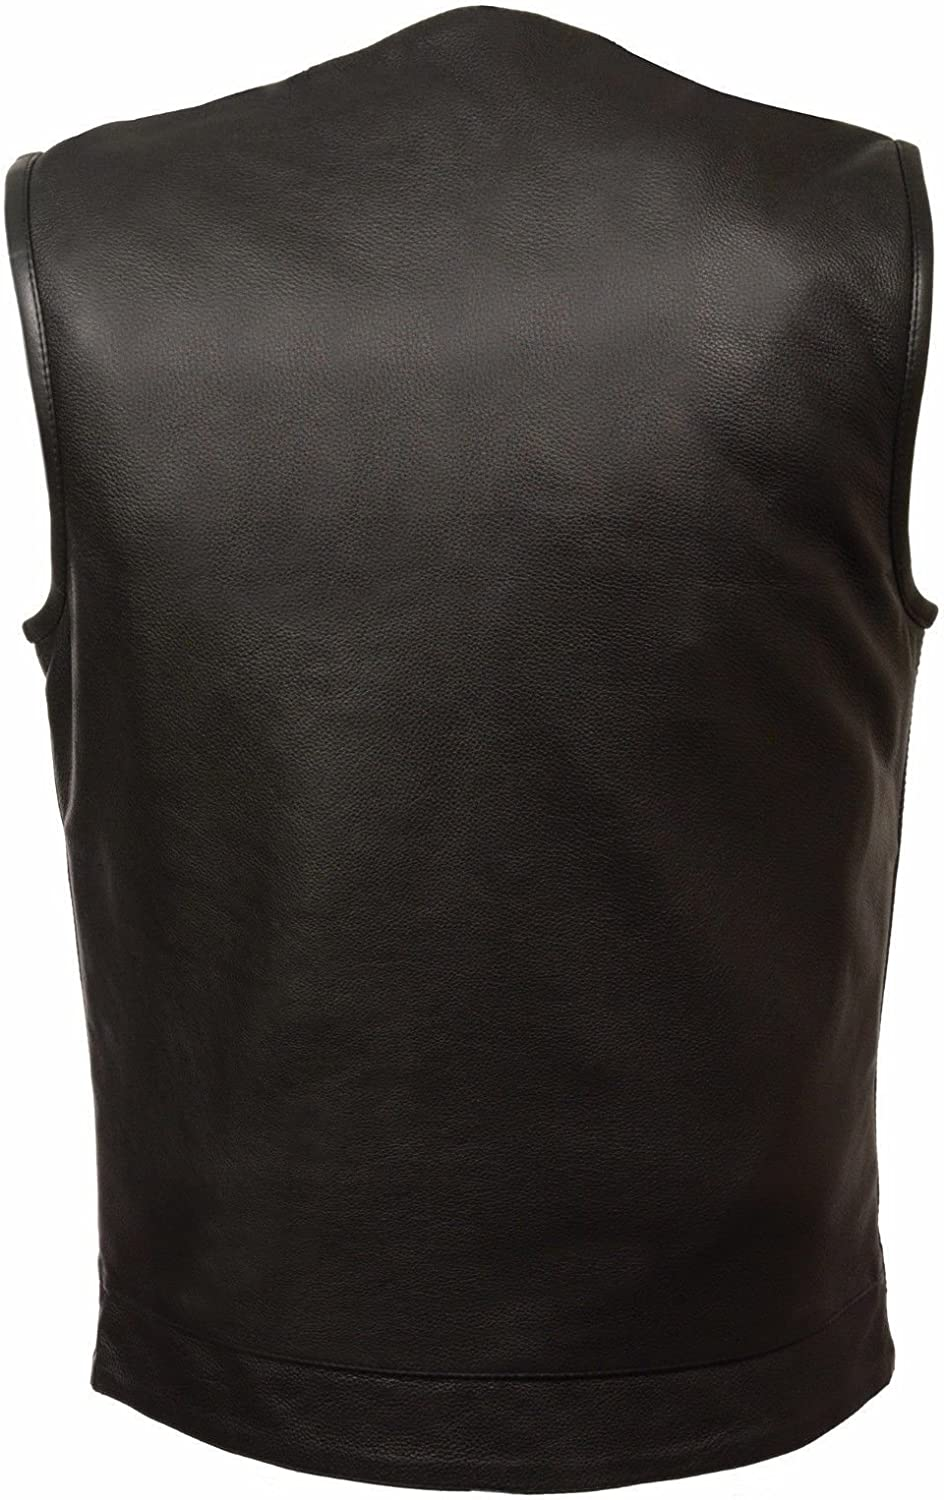 Milwaukee MENS MOTORCYCLE SON OF ANARCHY STYLE BUTTER SOFT LEATHER VEST W//O COLLAR NEW 7XL Regular